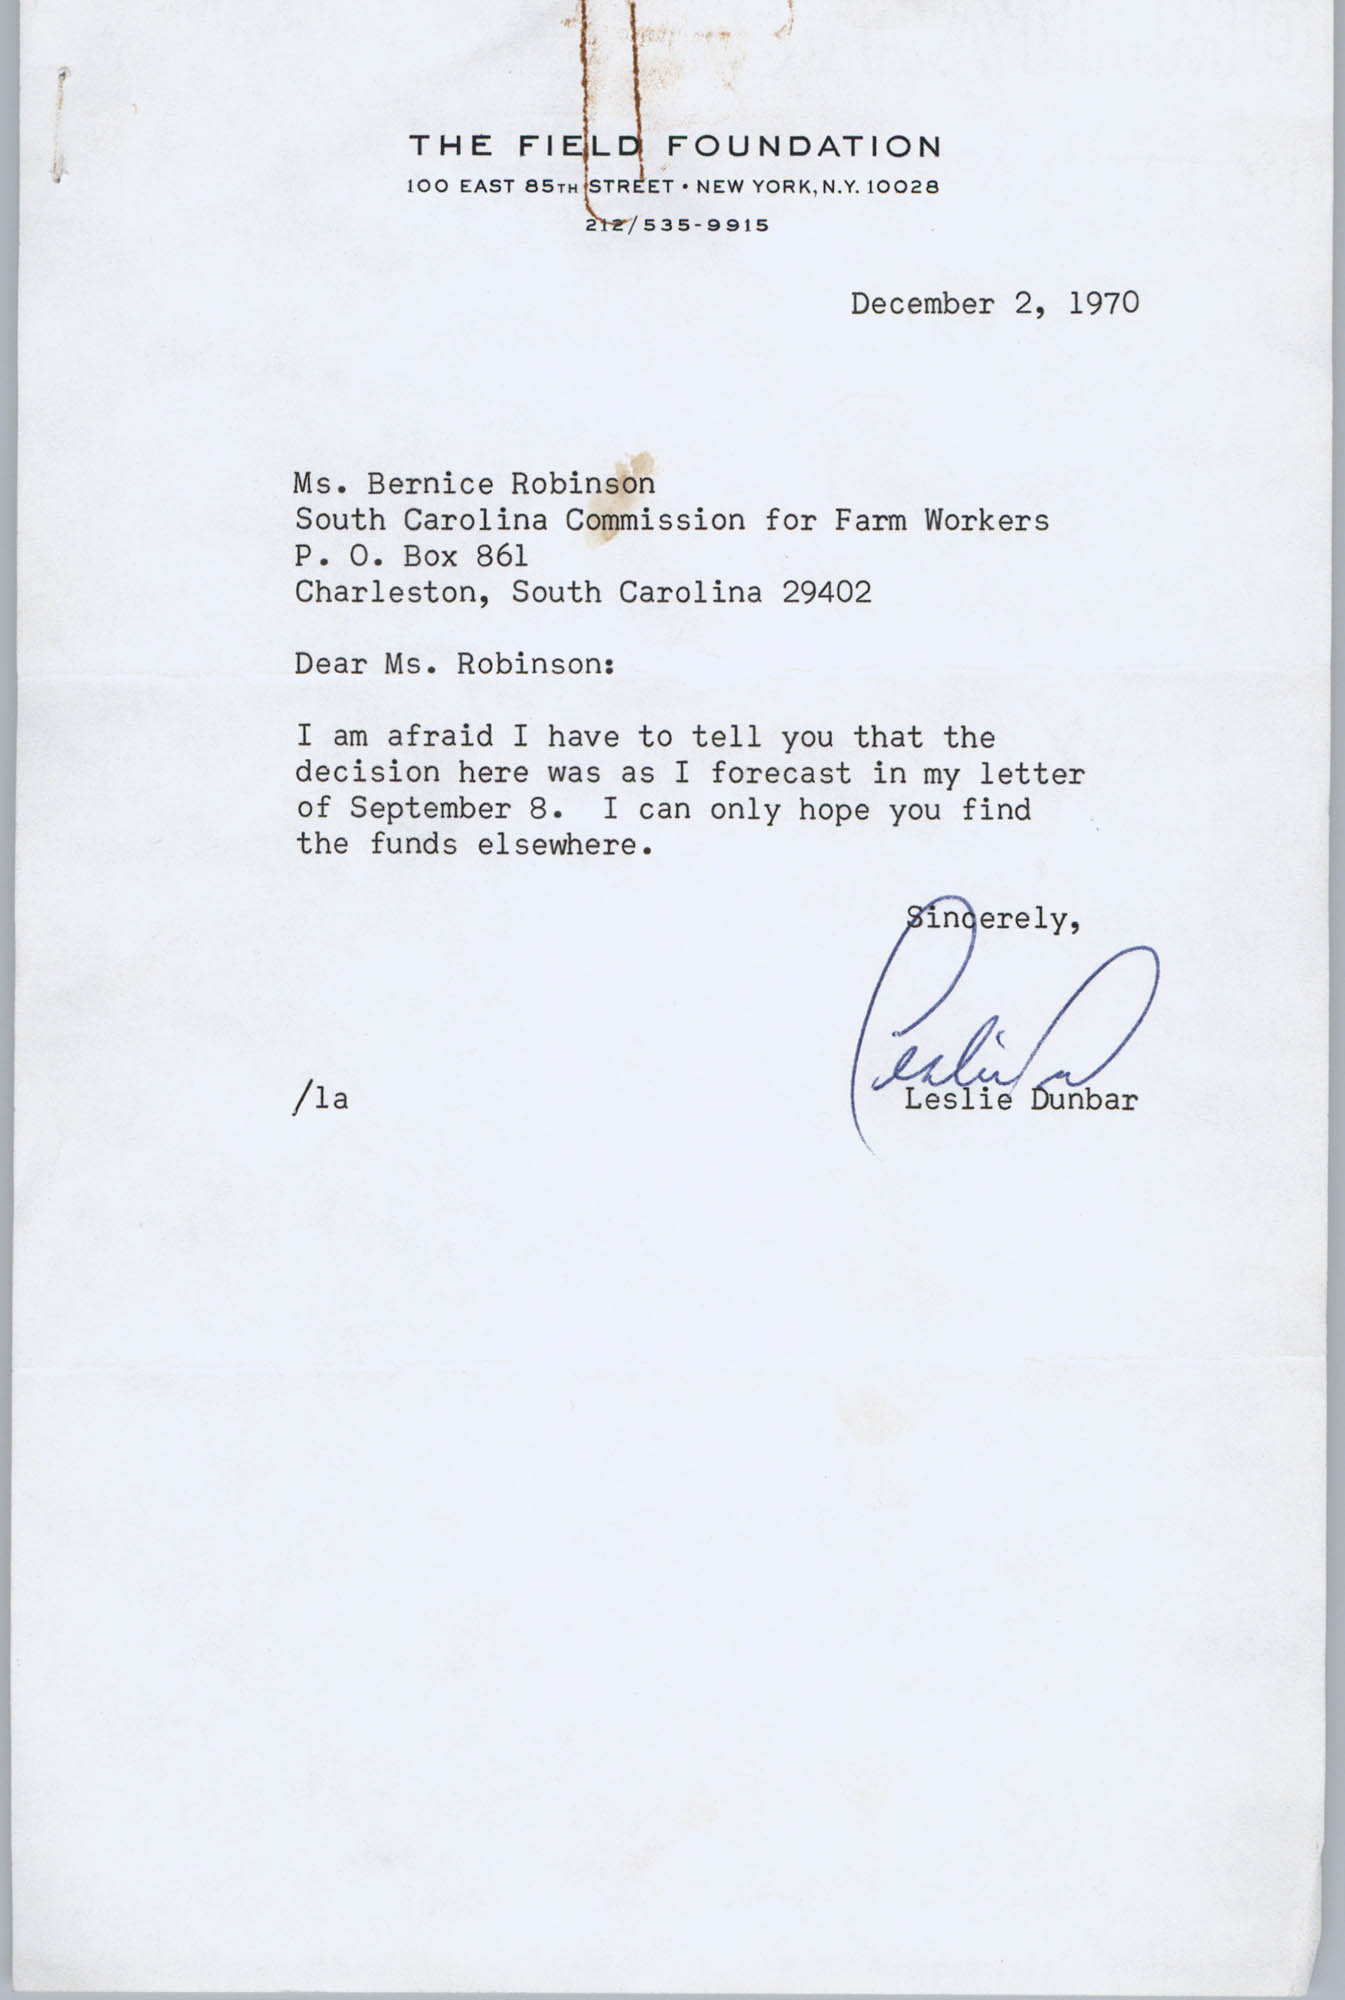 Letter from Leslie Dunbar to Bernice Robinson, December 2, 1970